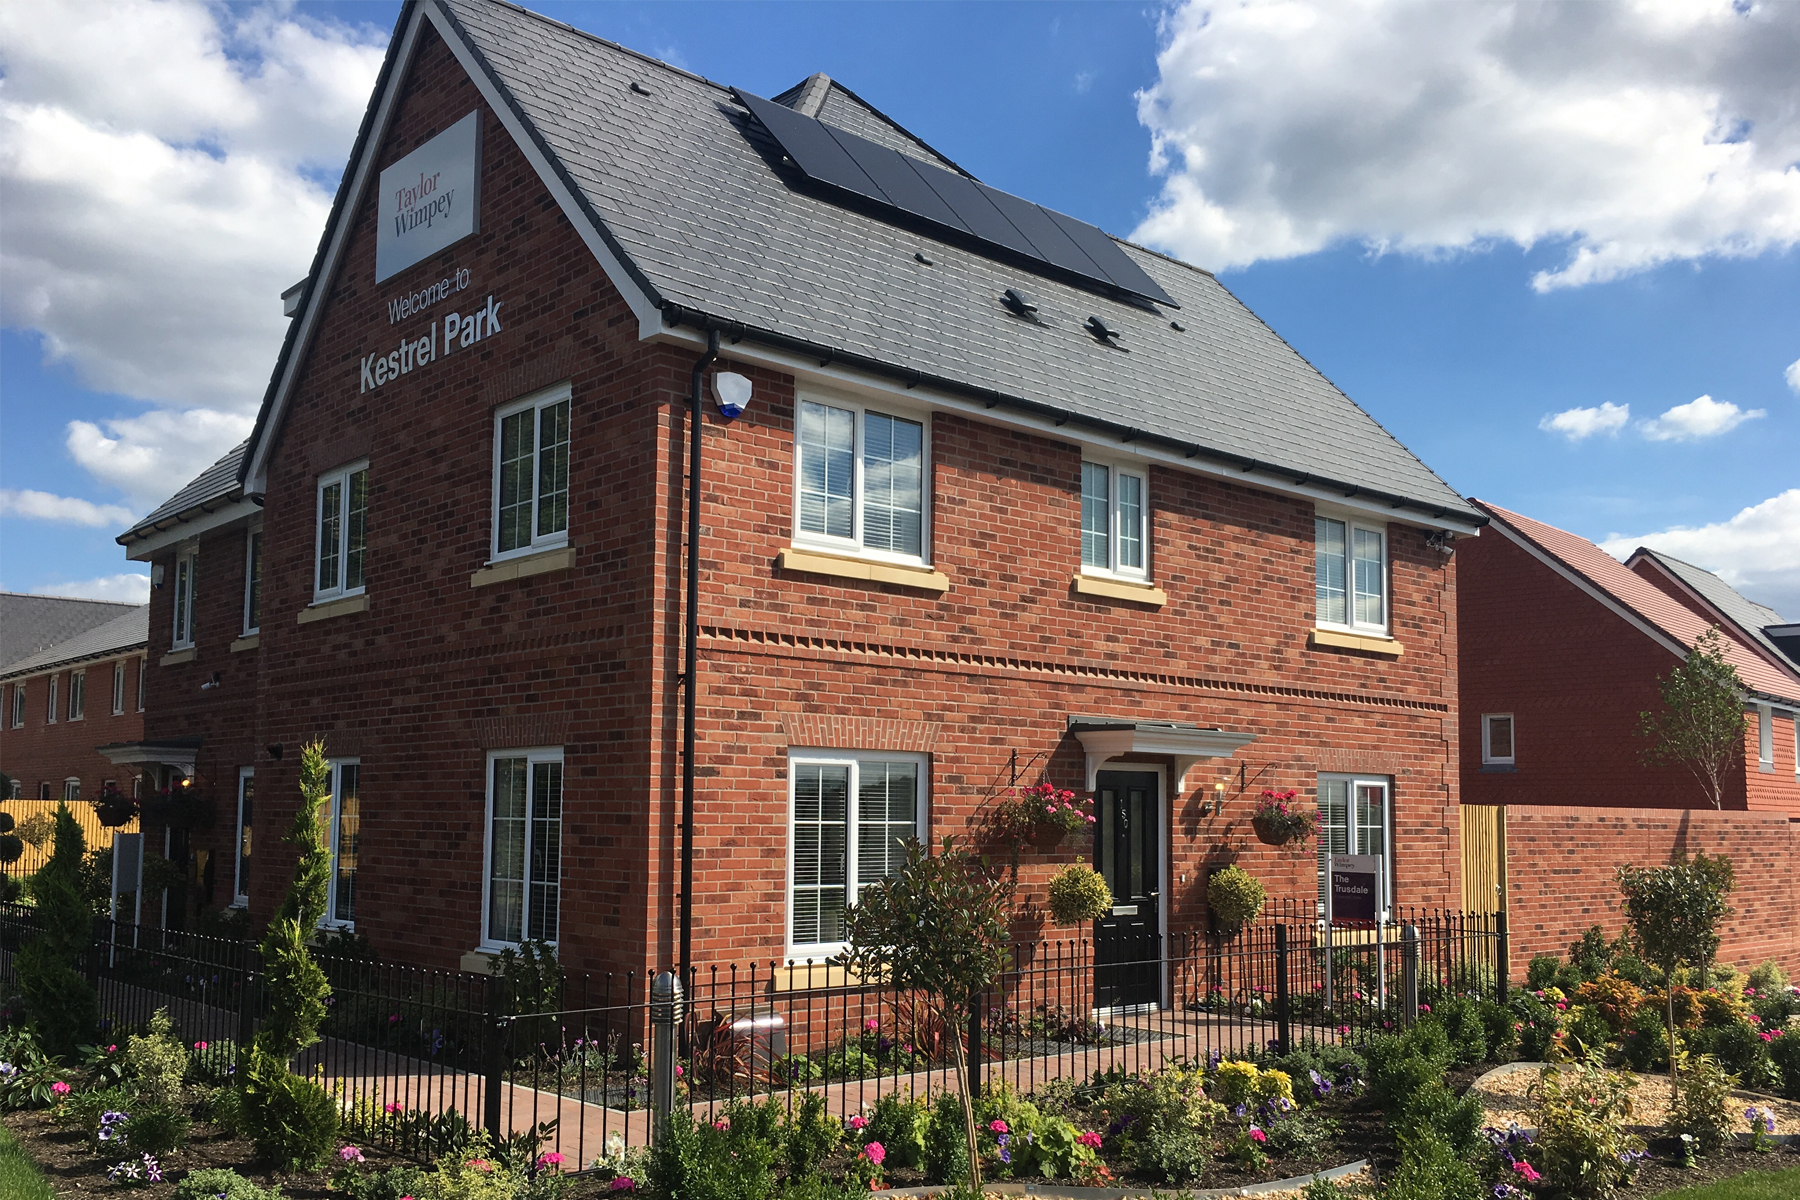 Typical Trusdale home.  Image of Trusdale show home at Kestrel Park